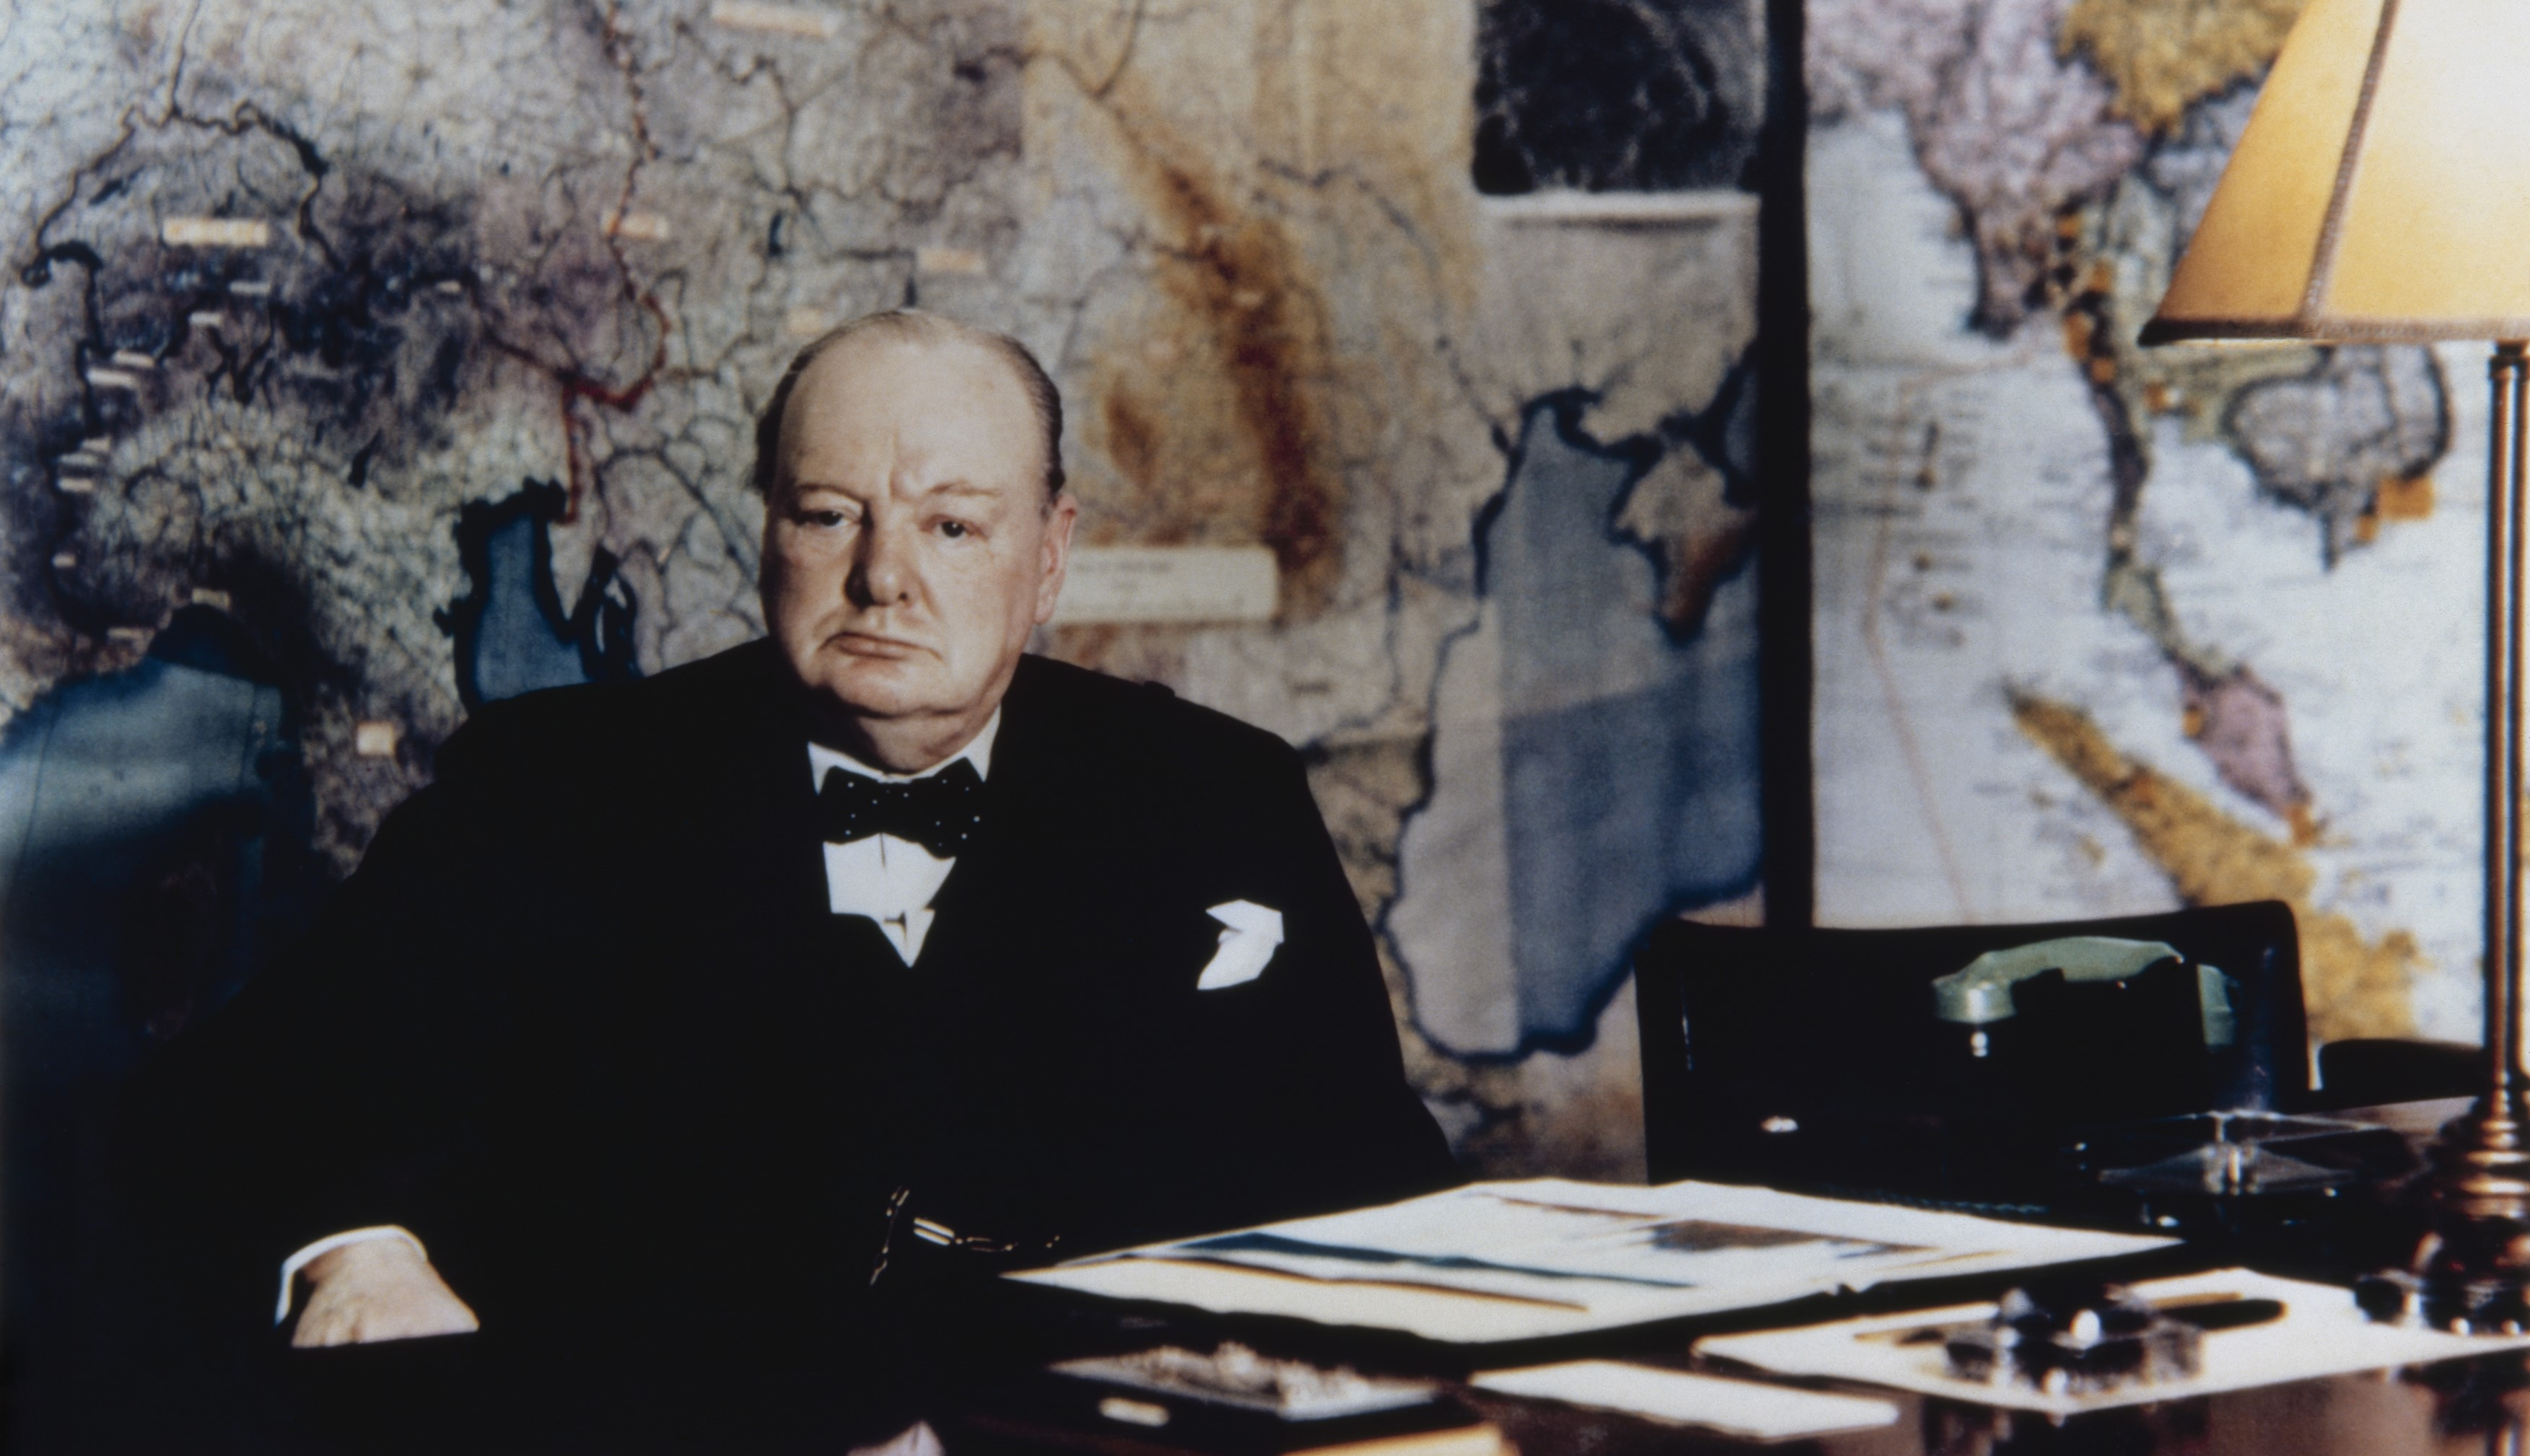 Churchill sitting